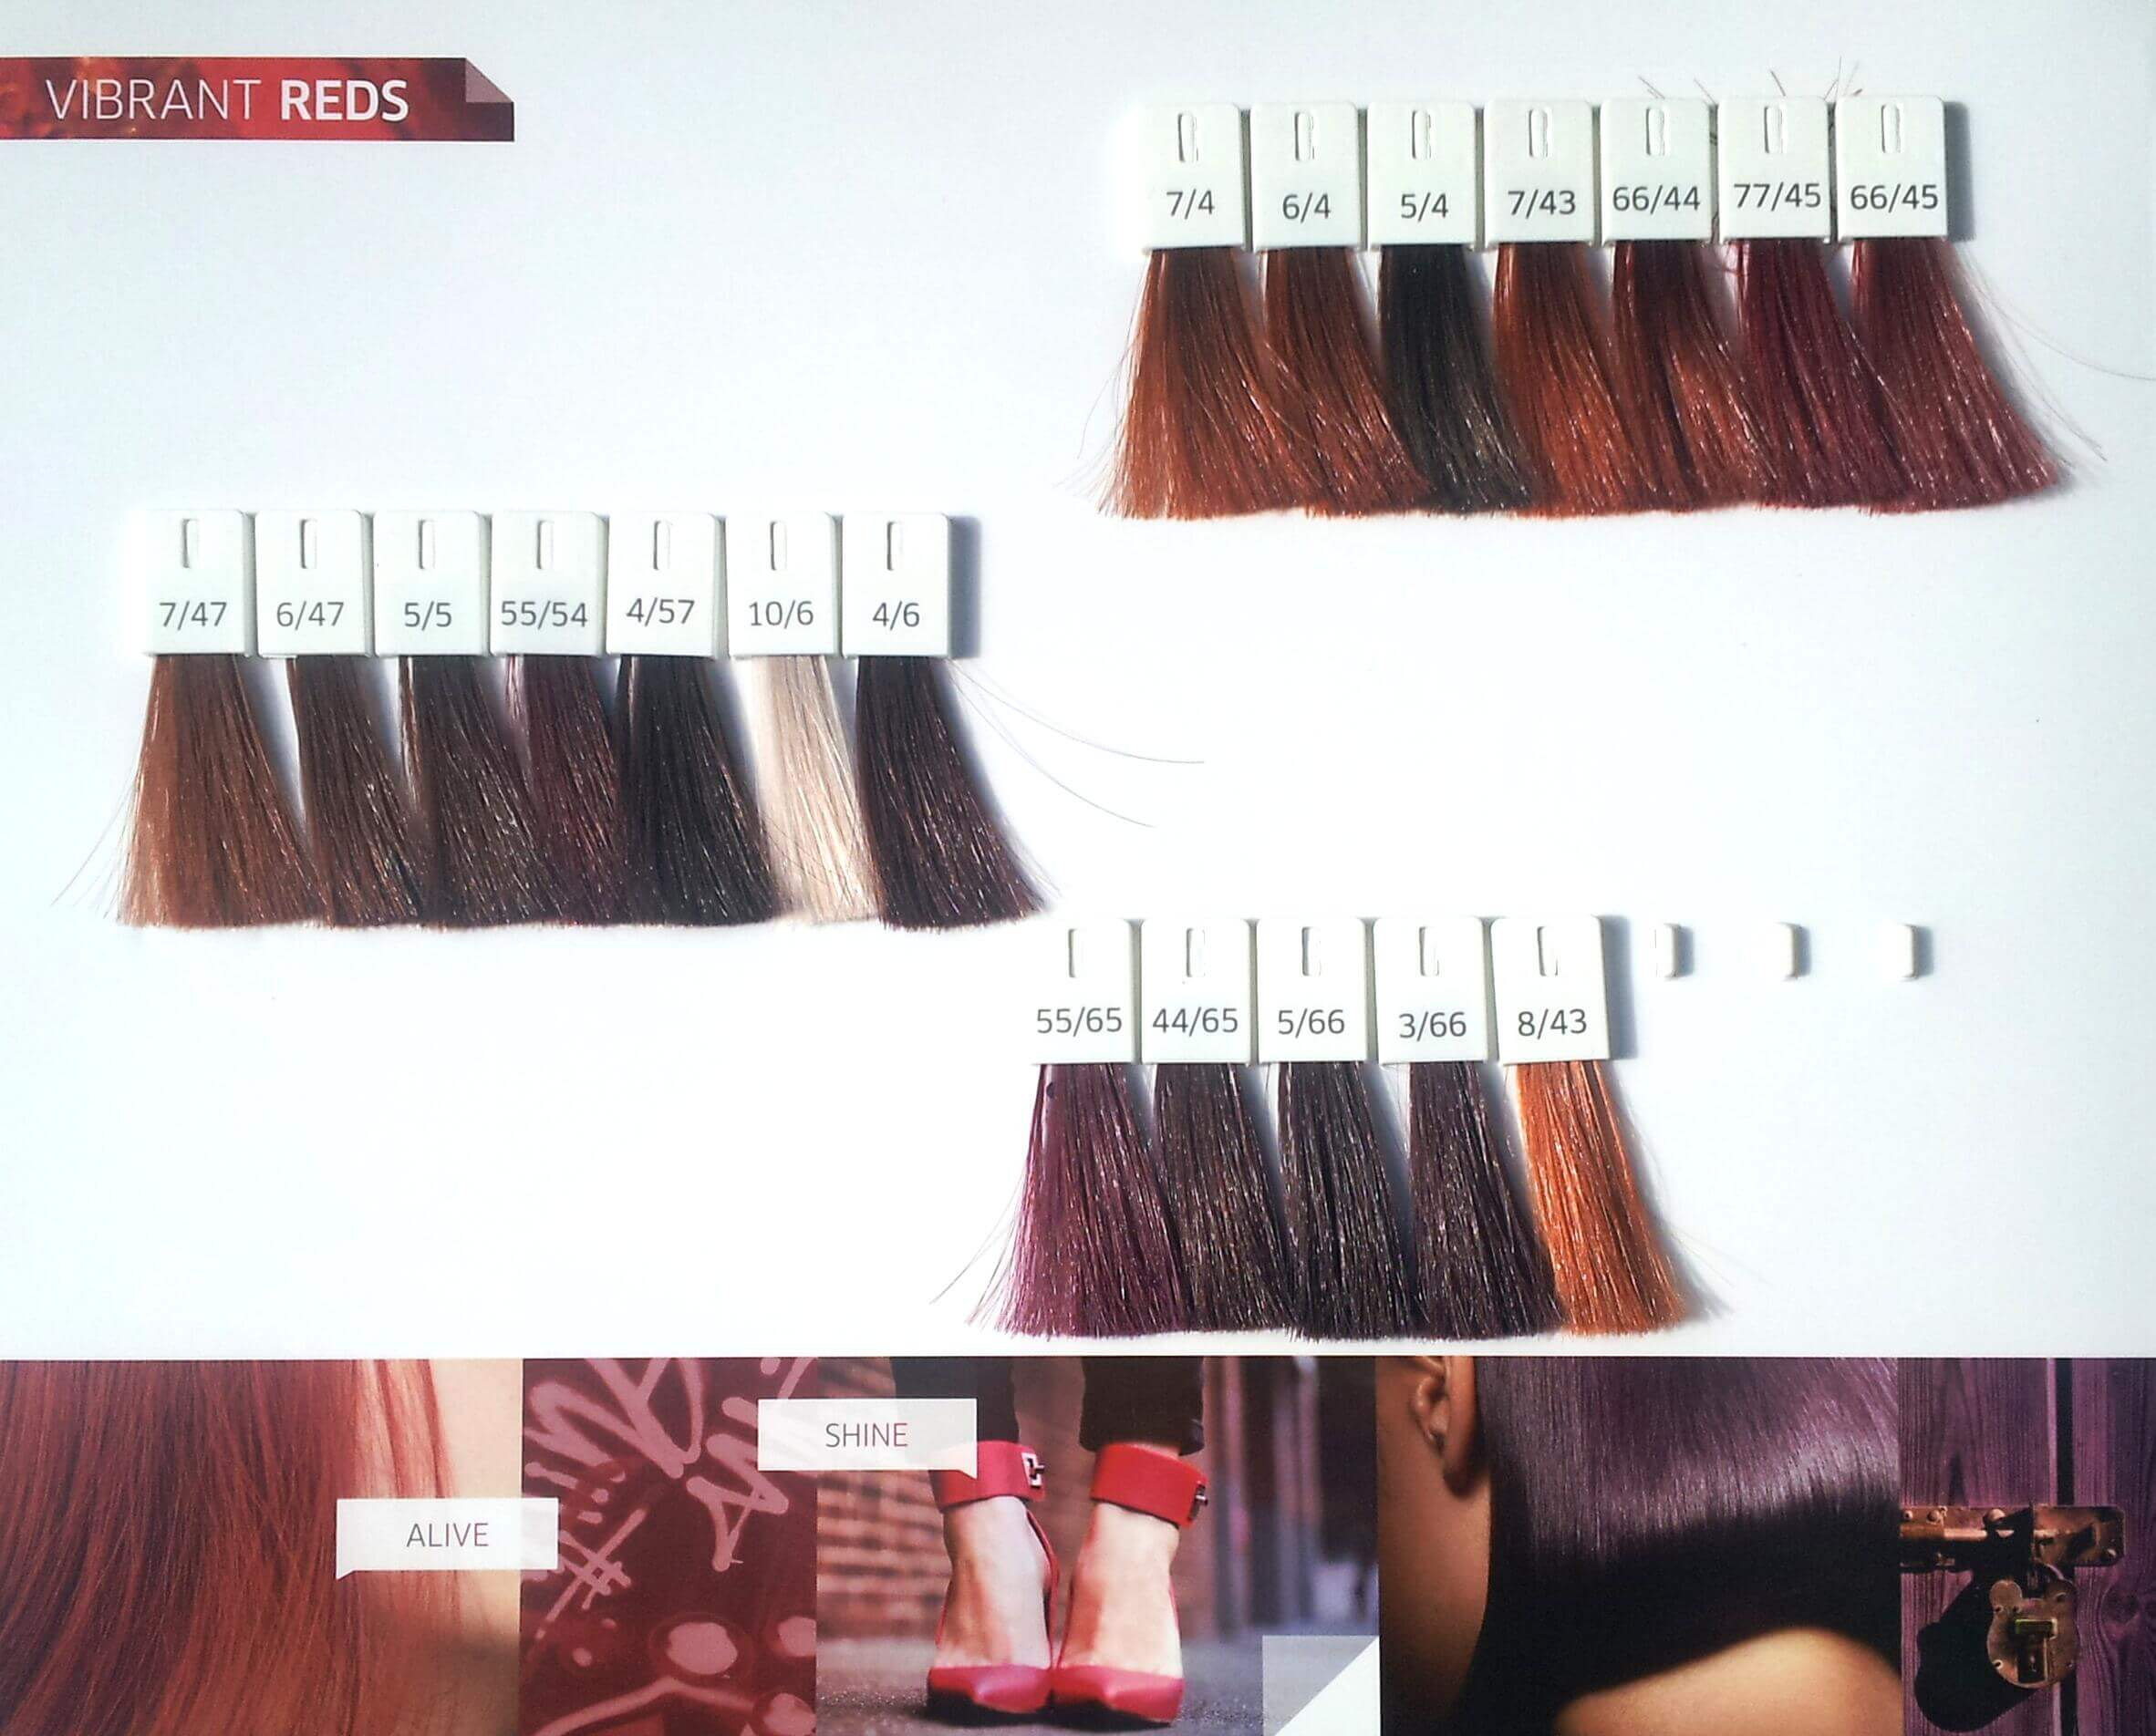 Vibrant Reds - Colour Touch - Semi Permanent Hair Colouring - Wella Professionals - Sylka Hair